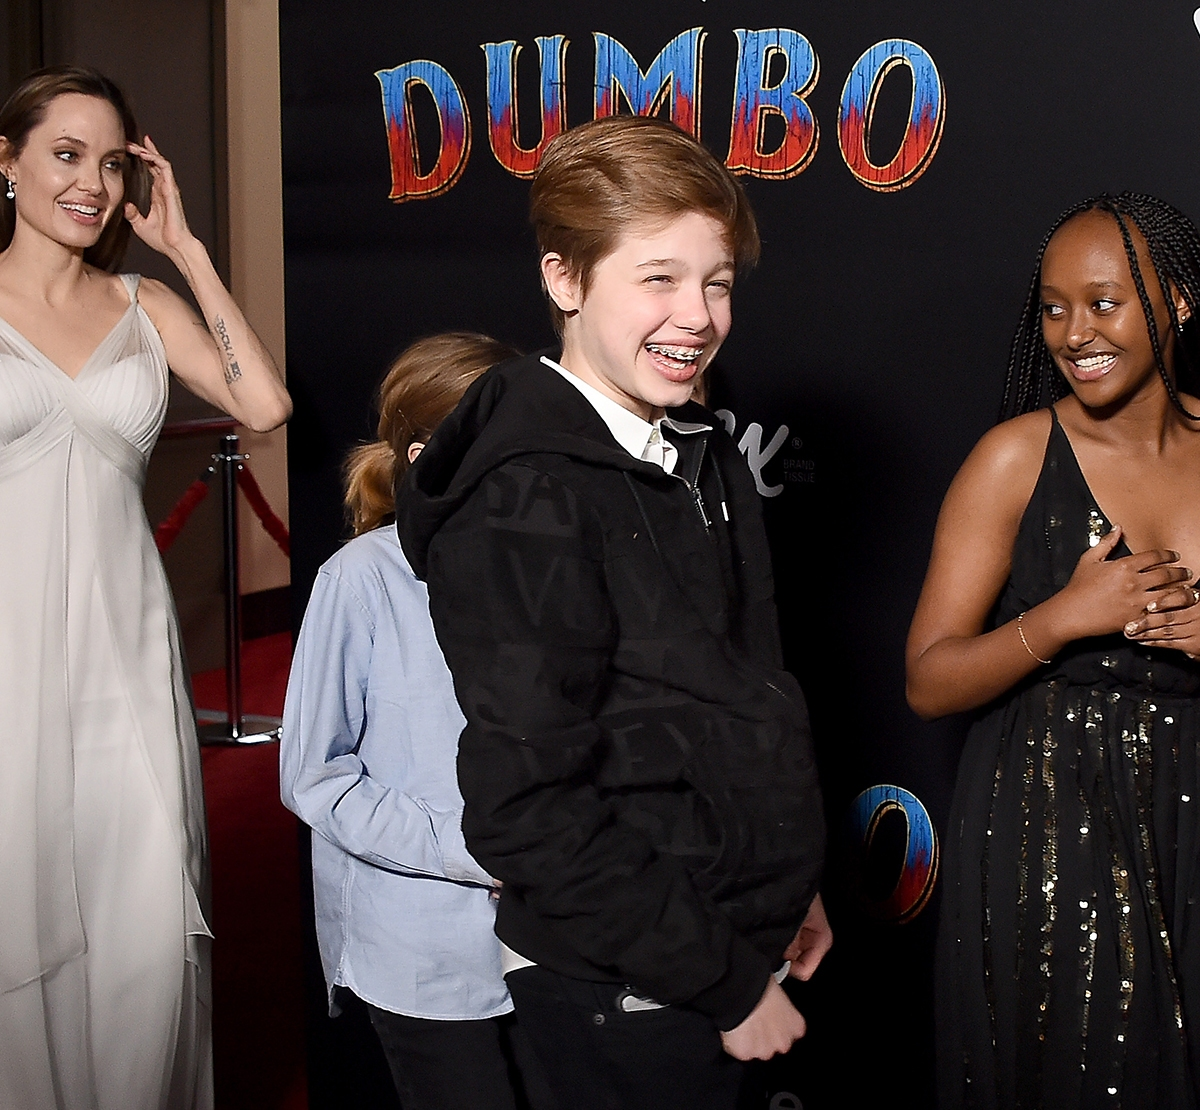 912376f37 Angelina Jolie Shows off Back Tattoos at 'Dumbo' Red Carpet With Kids